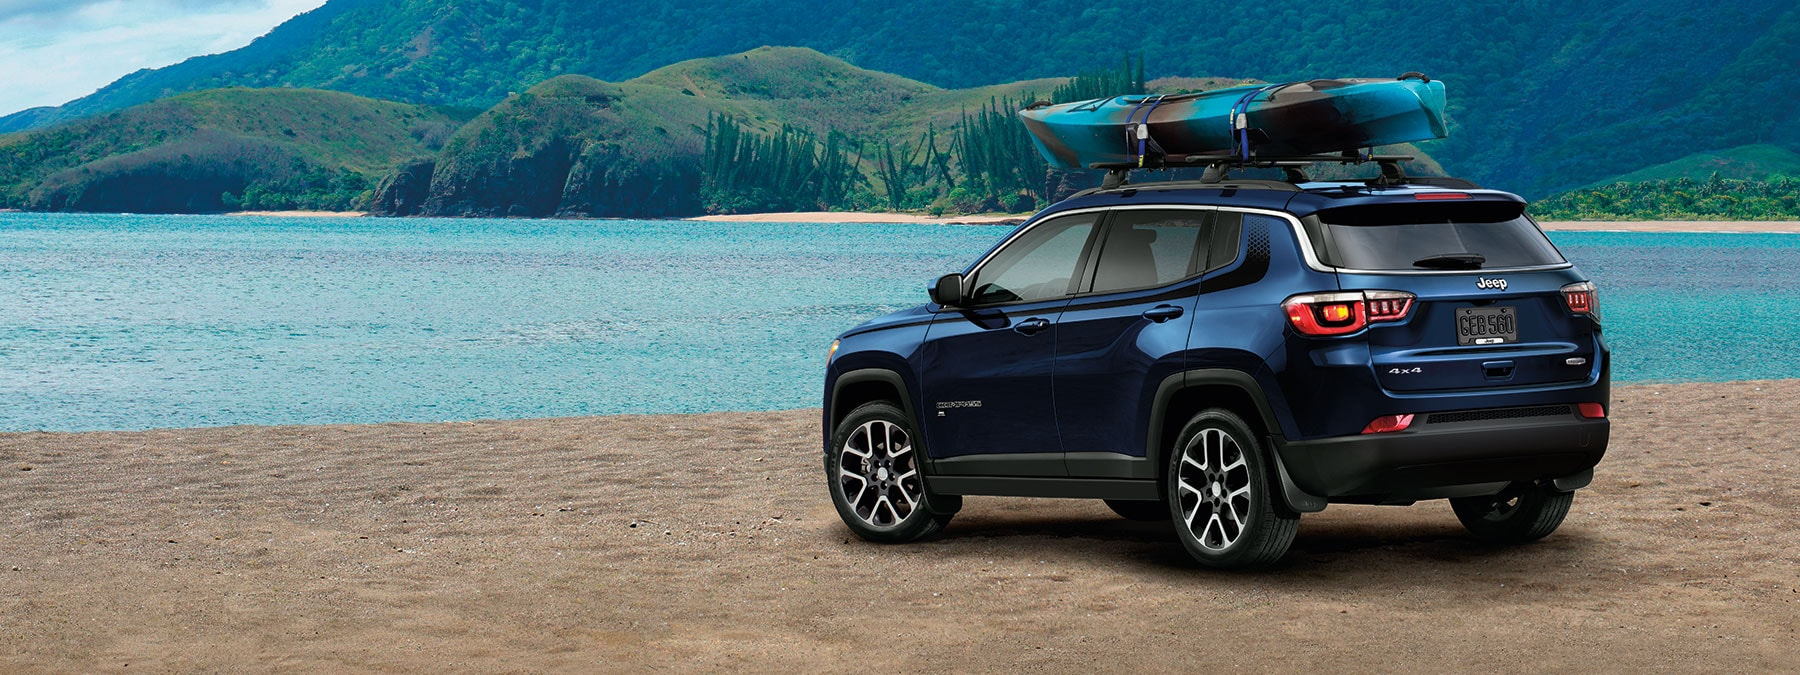 2020 Jeep Compass With Canoe On Roof Rack